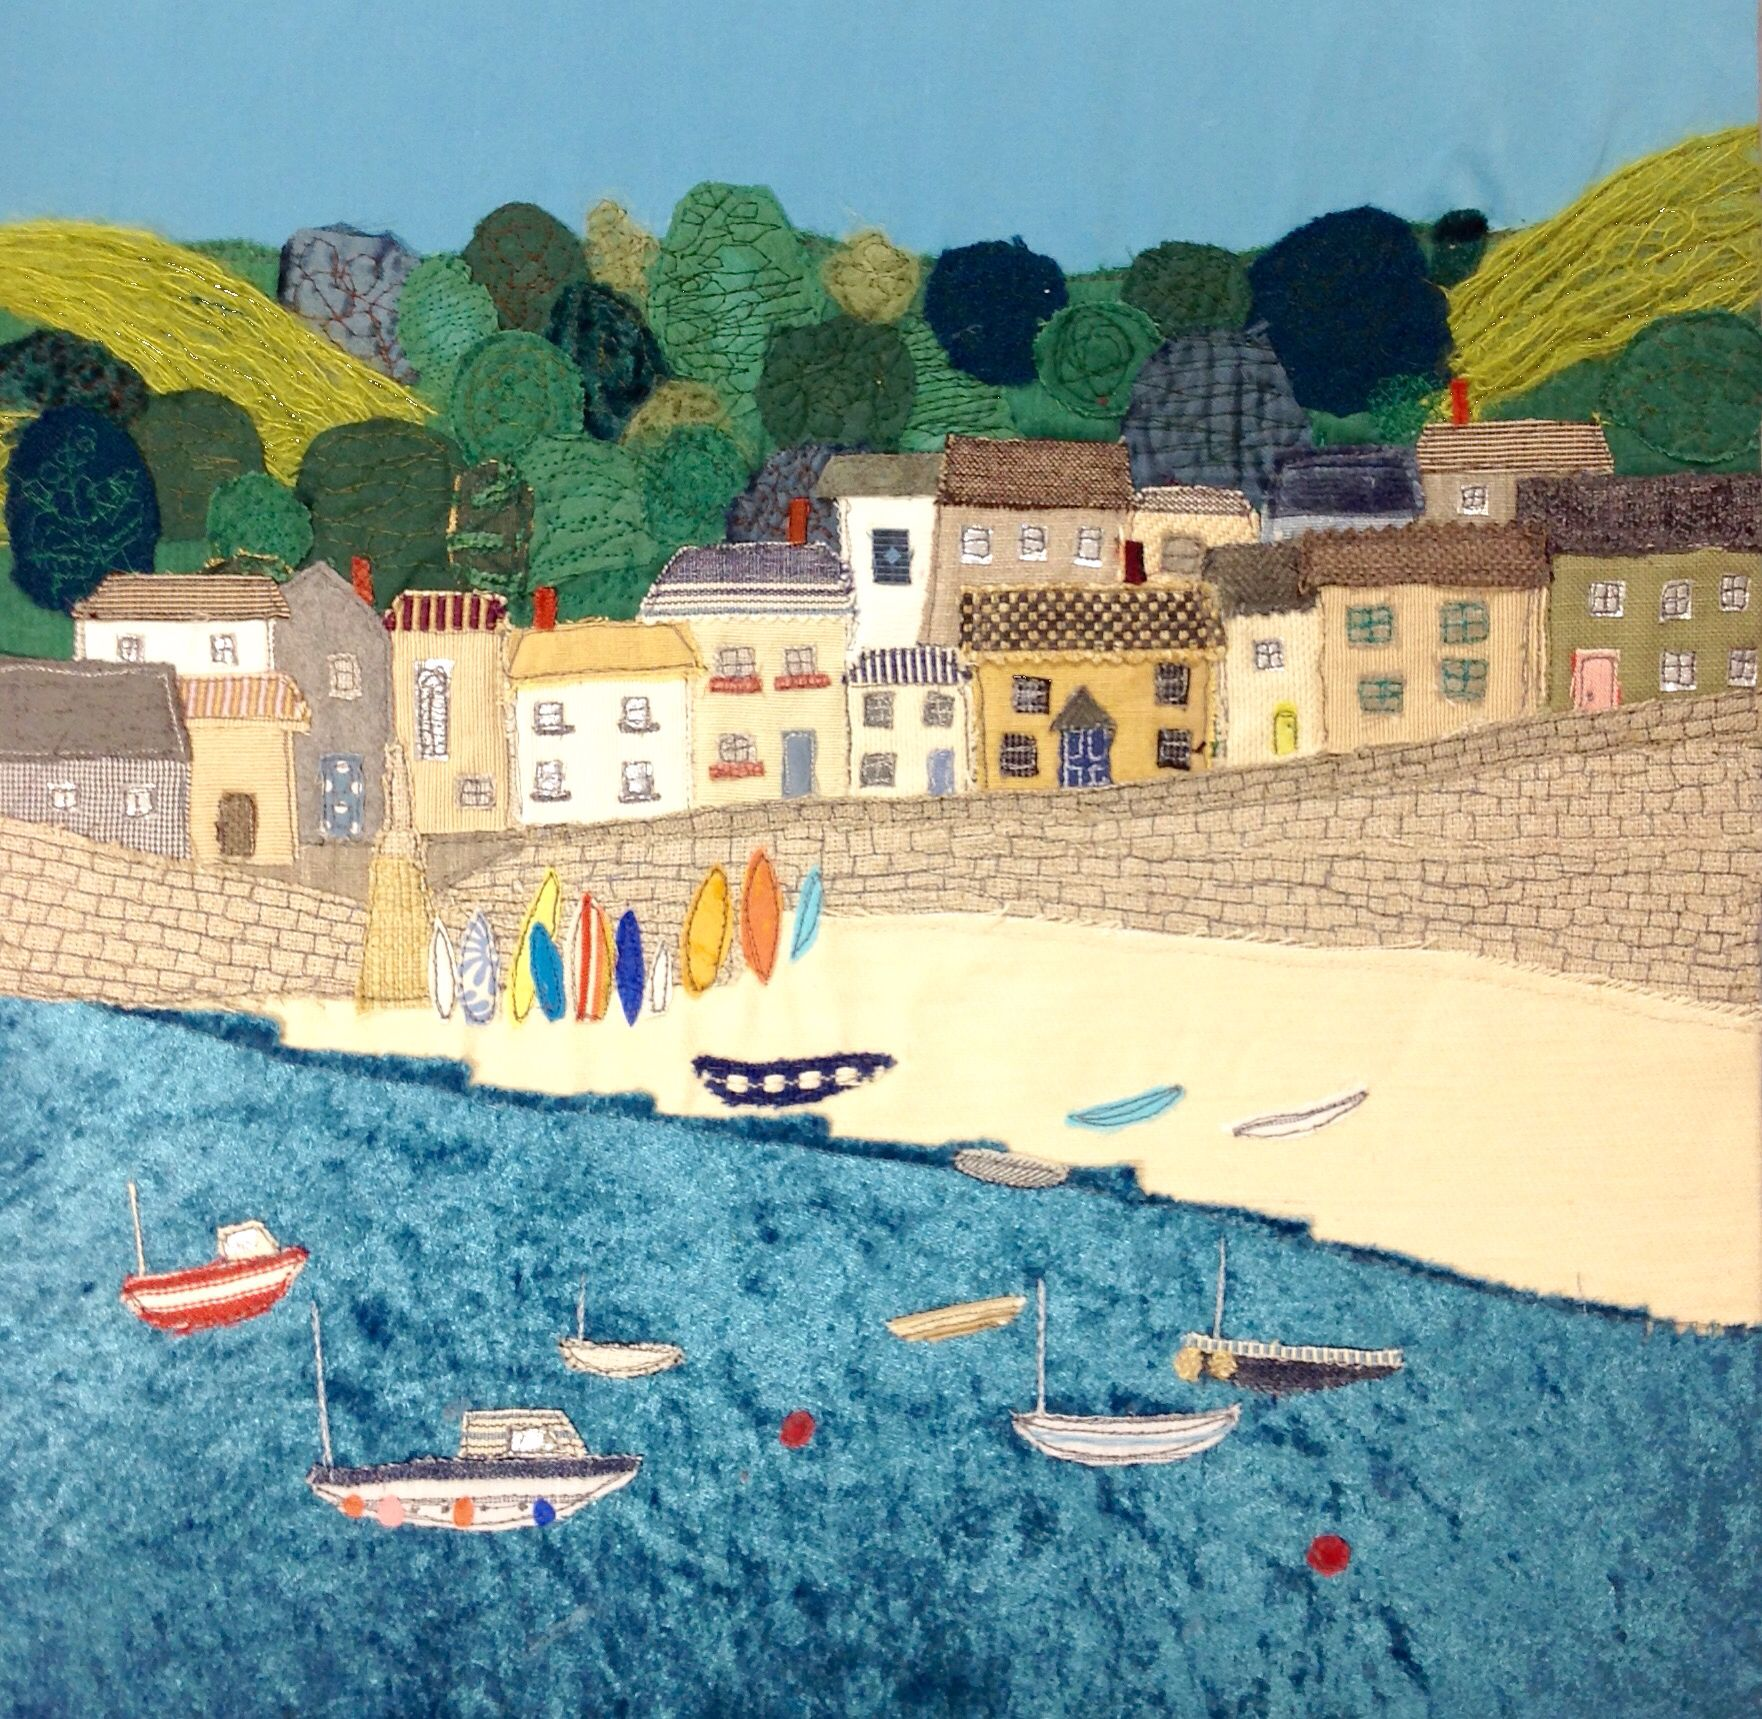 Limited edition print of Mousehole in Cornwall on sale